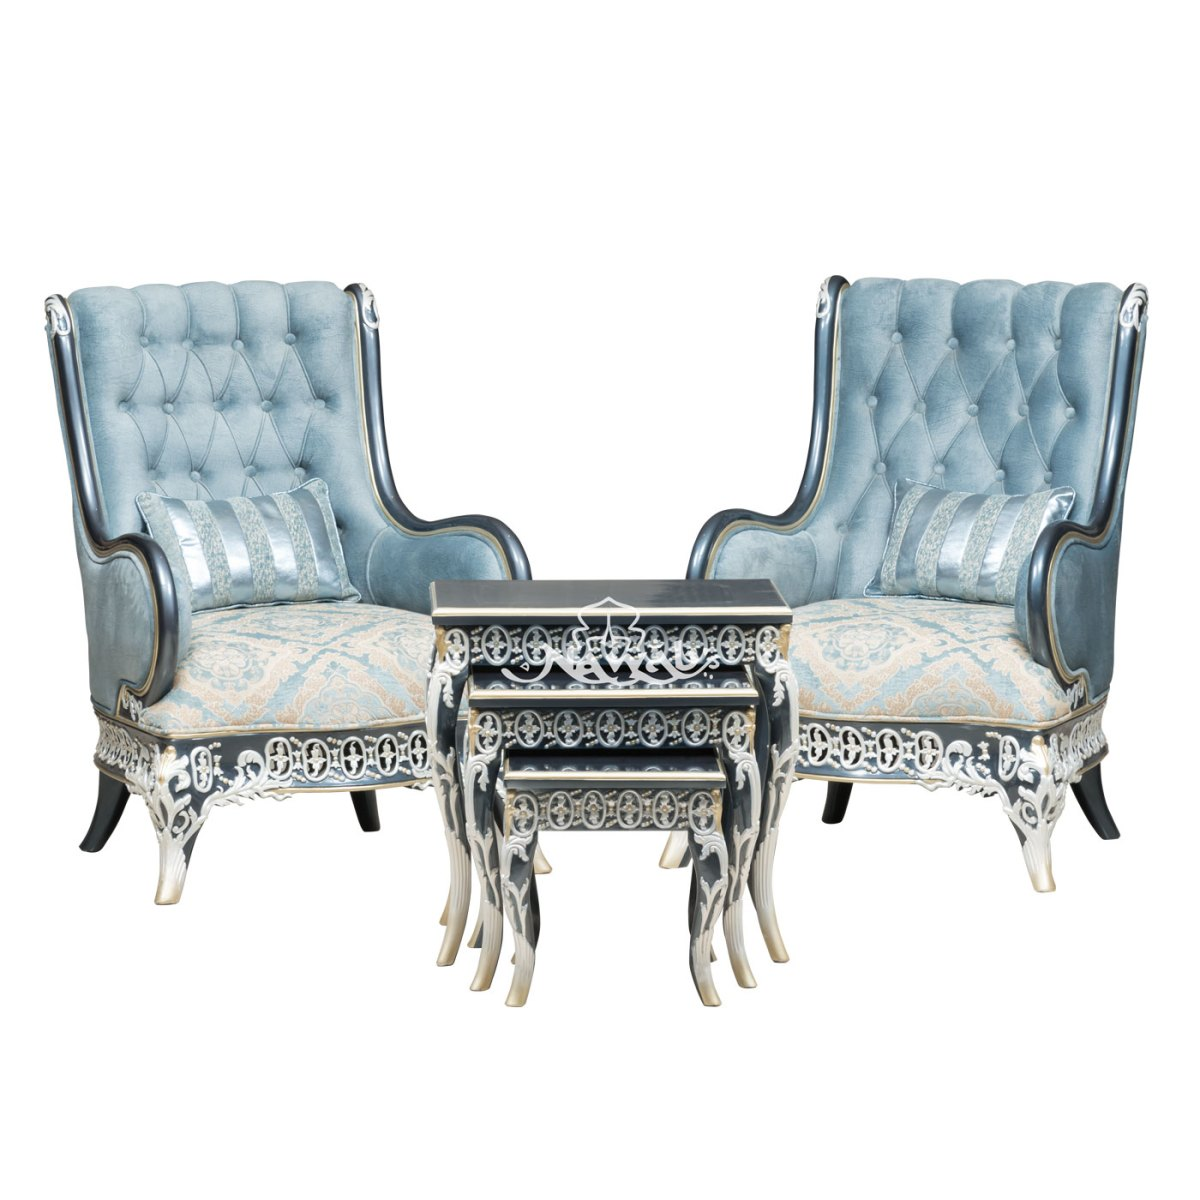 1-seater-teakwood-hand-carved-sofa-blue-white-pearl-polish-with-golden-lining-high-end-suede-upholstery-table-blue-onyx-top